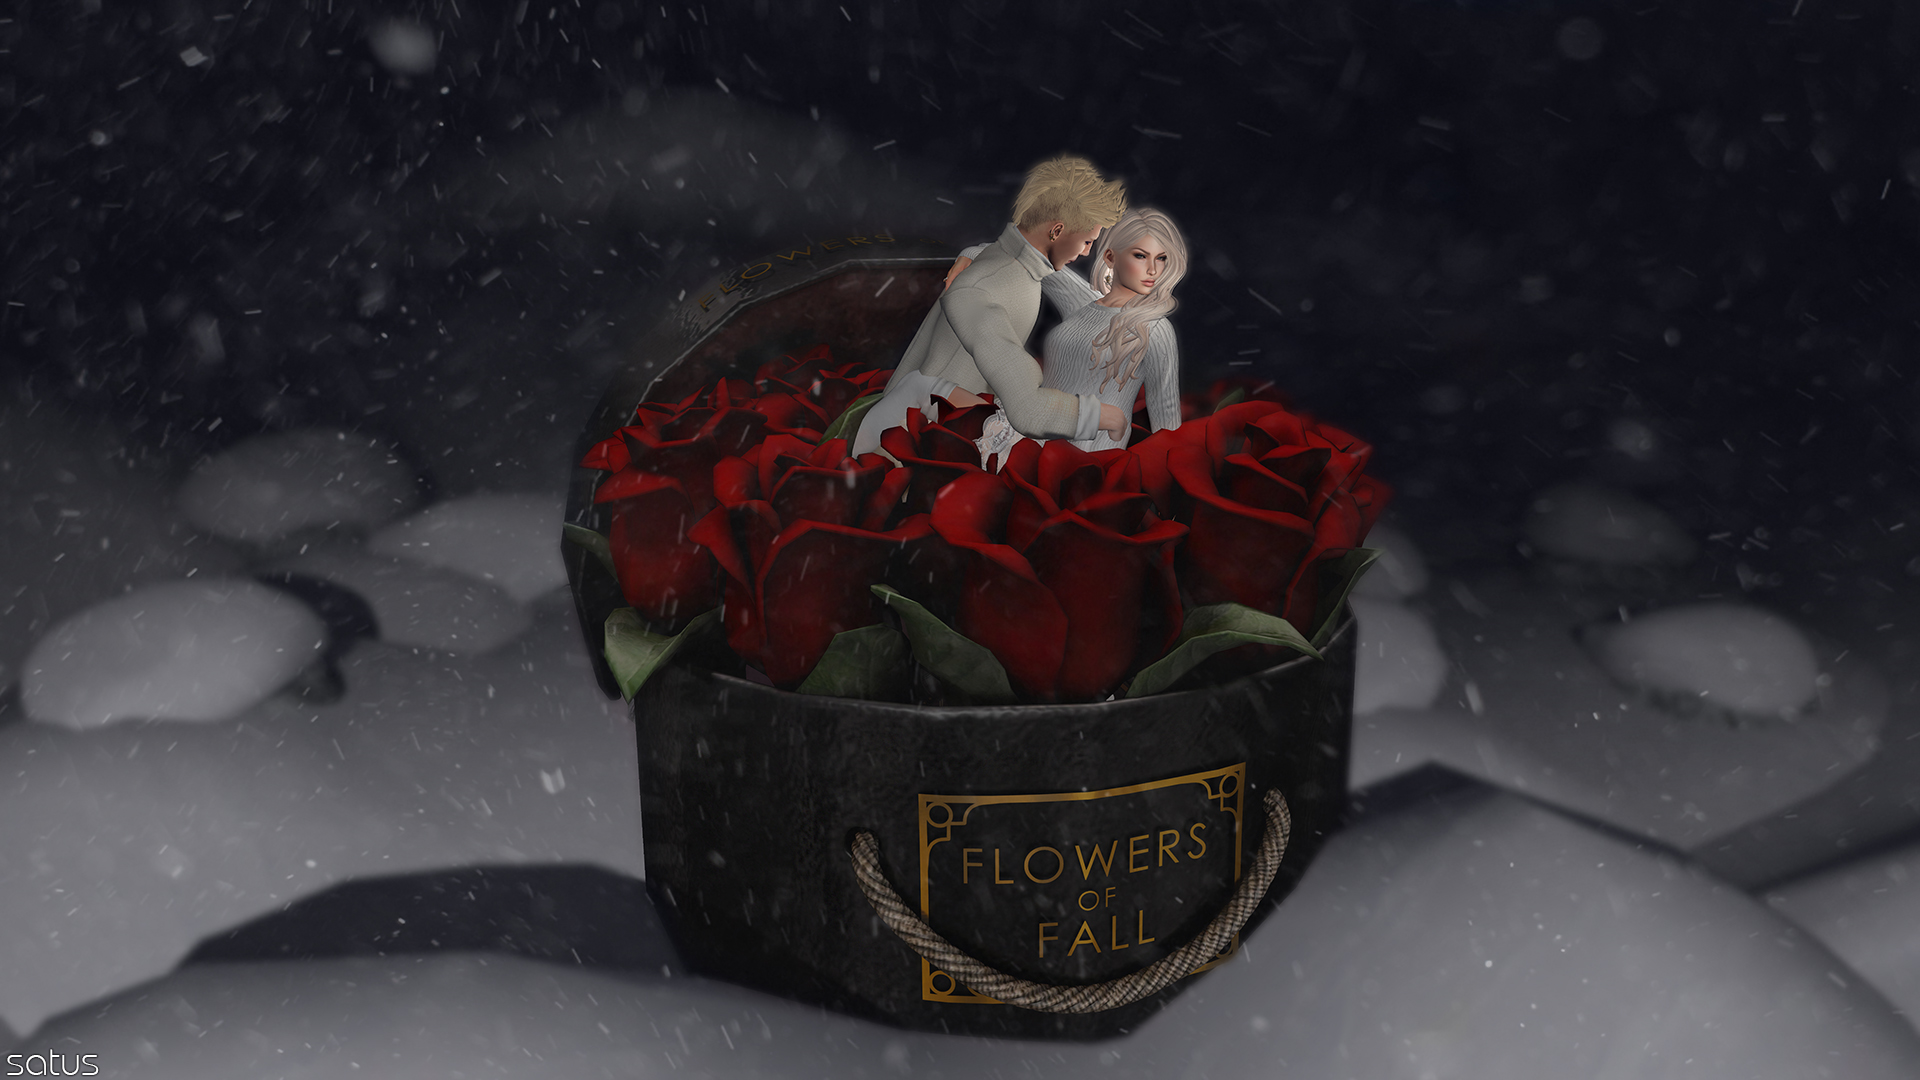 There Were Roses In The Snow